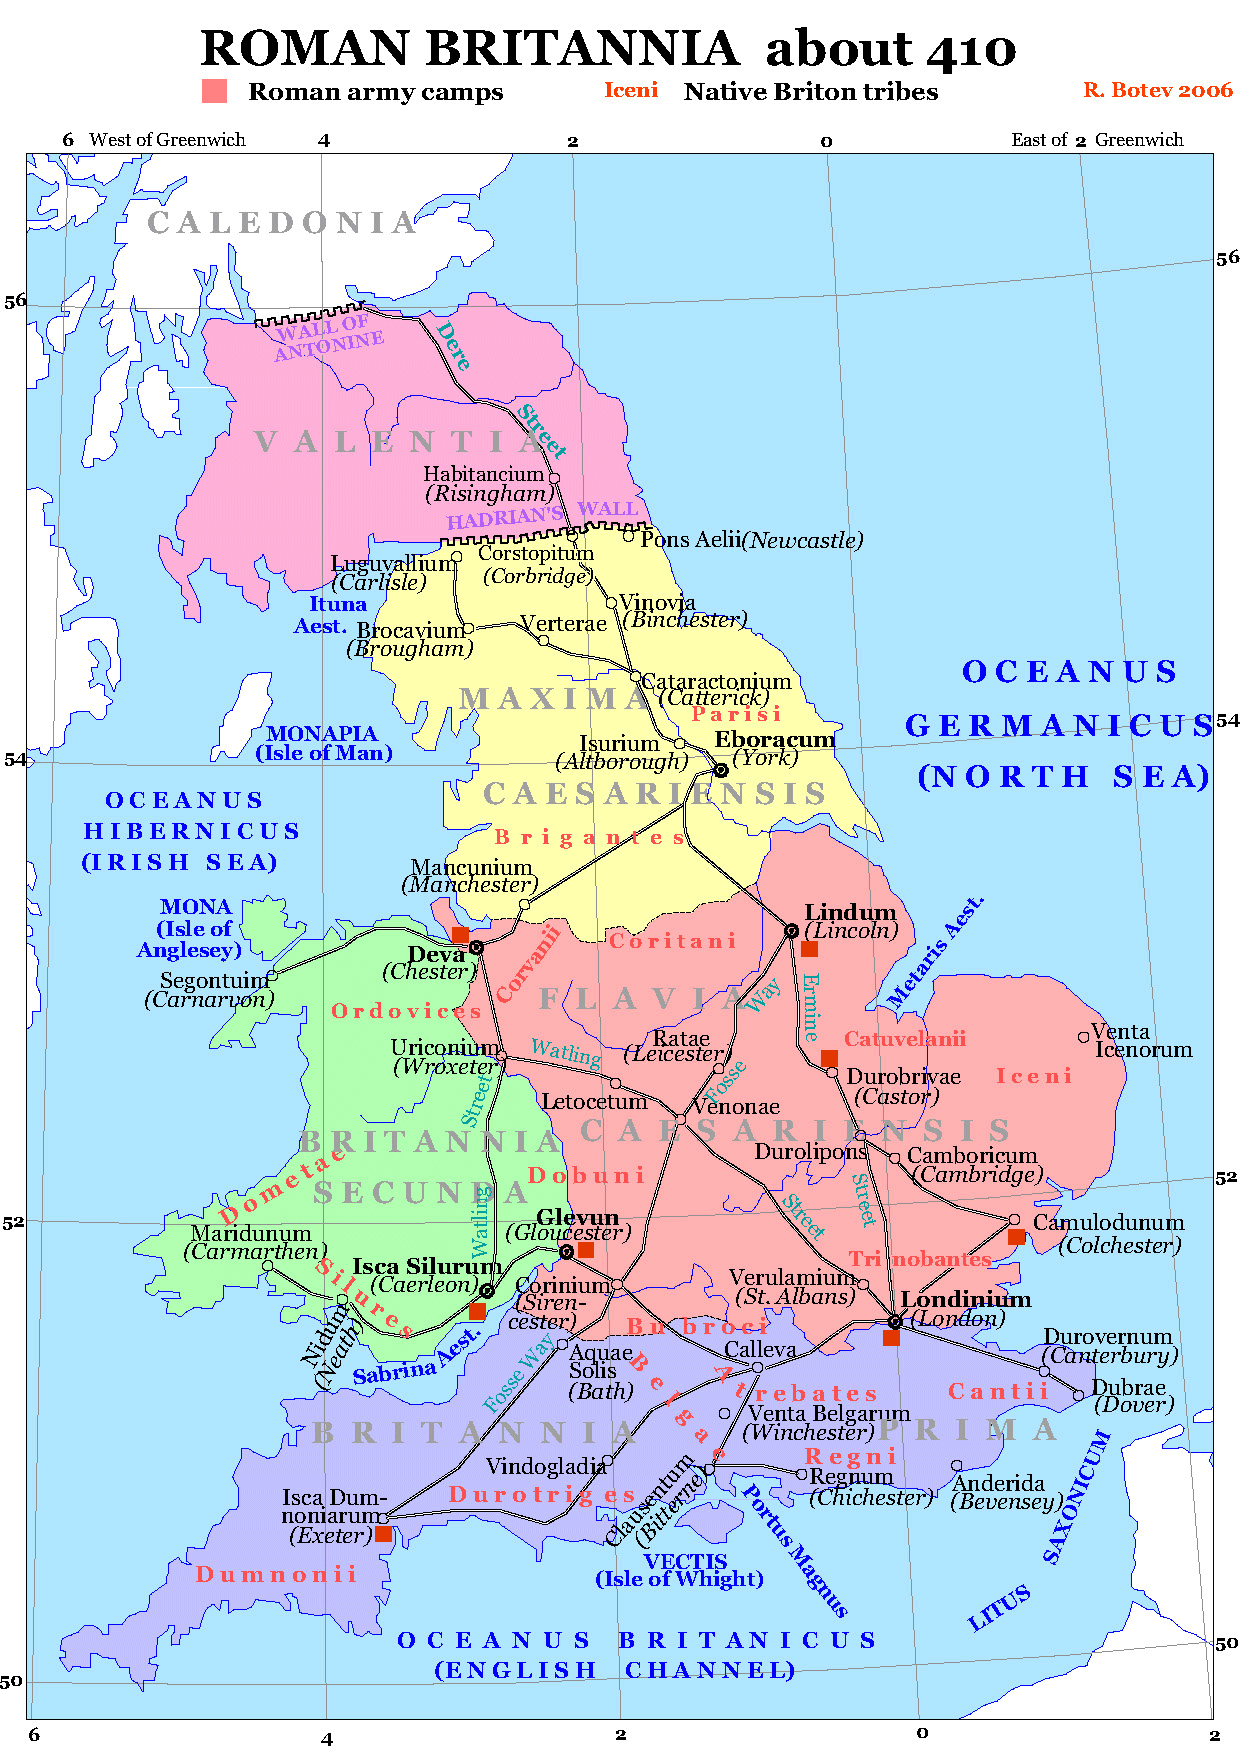 Roman Map Of Britain Roman Britain 410   Mapsof.| History | Roman britain, Britain  Roman Map Of Britain